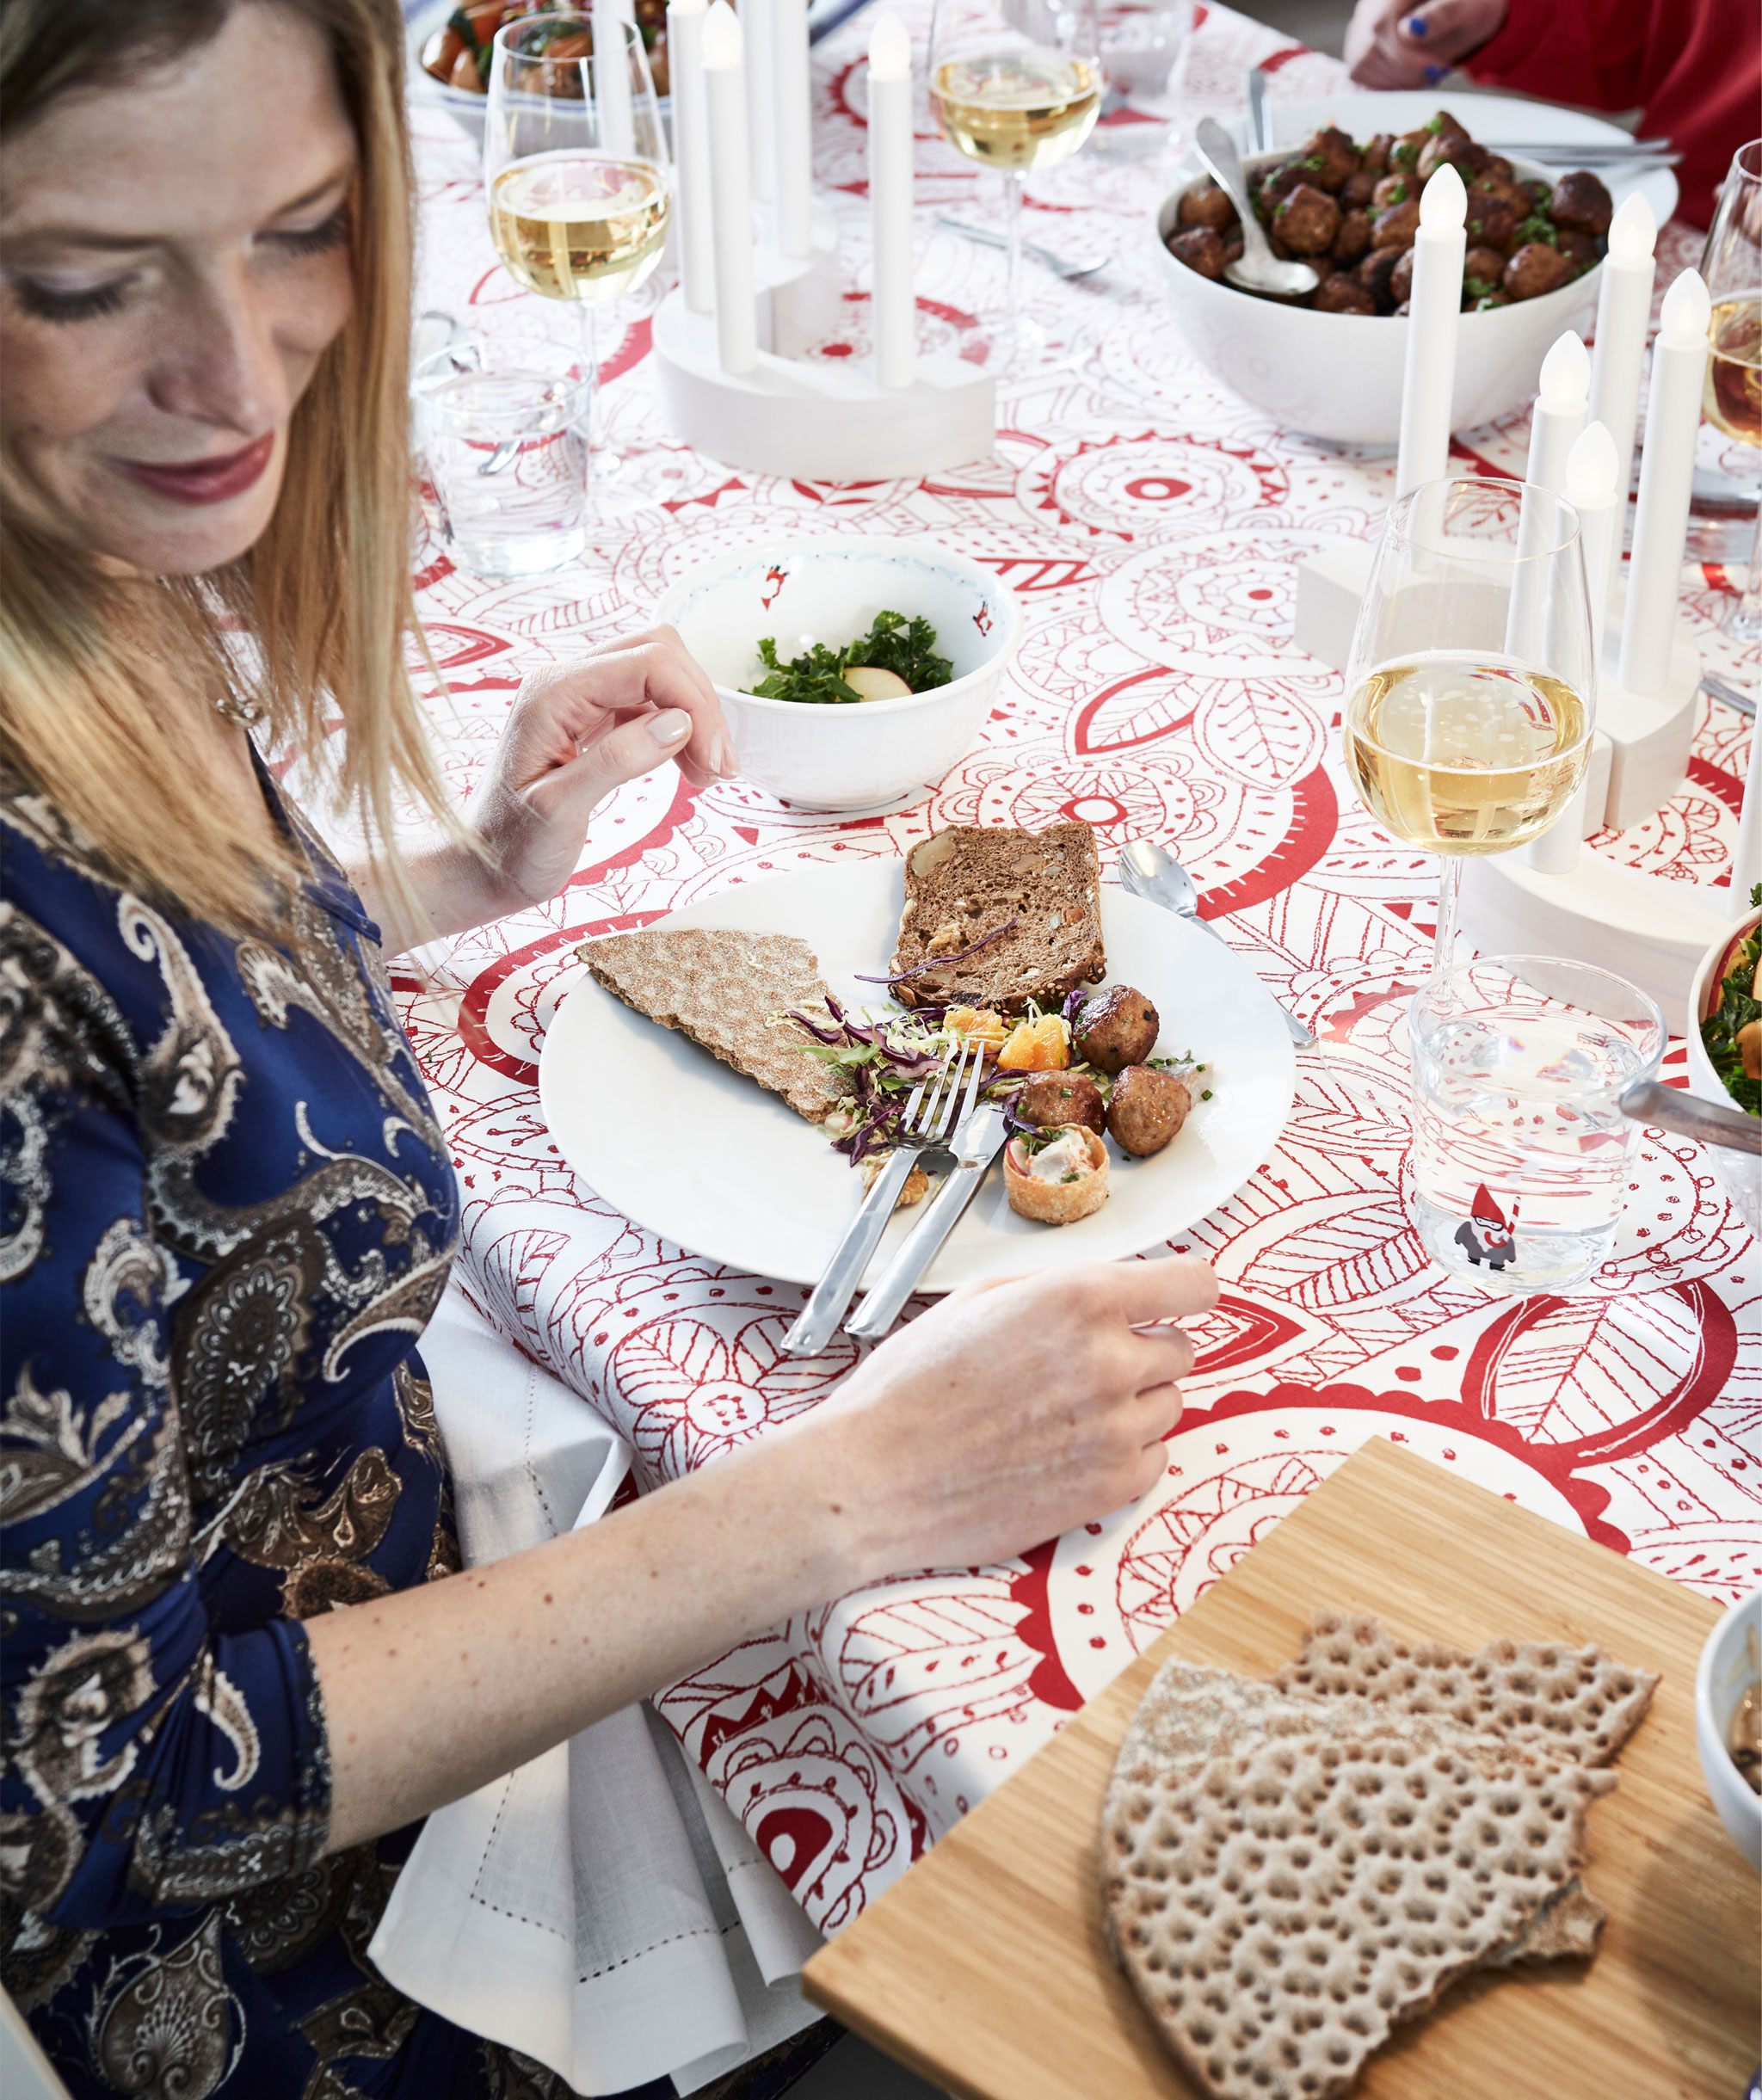 Section of decorated, festively set table with food, drinks and people. A woman is proffered a tray with crispbread.